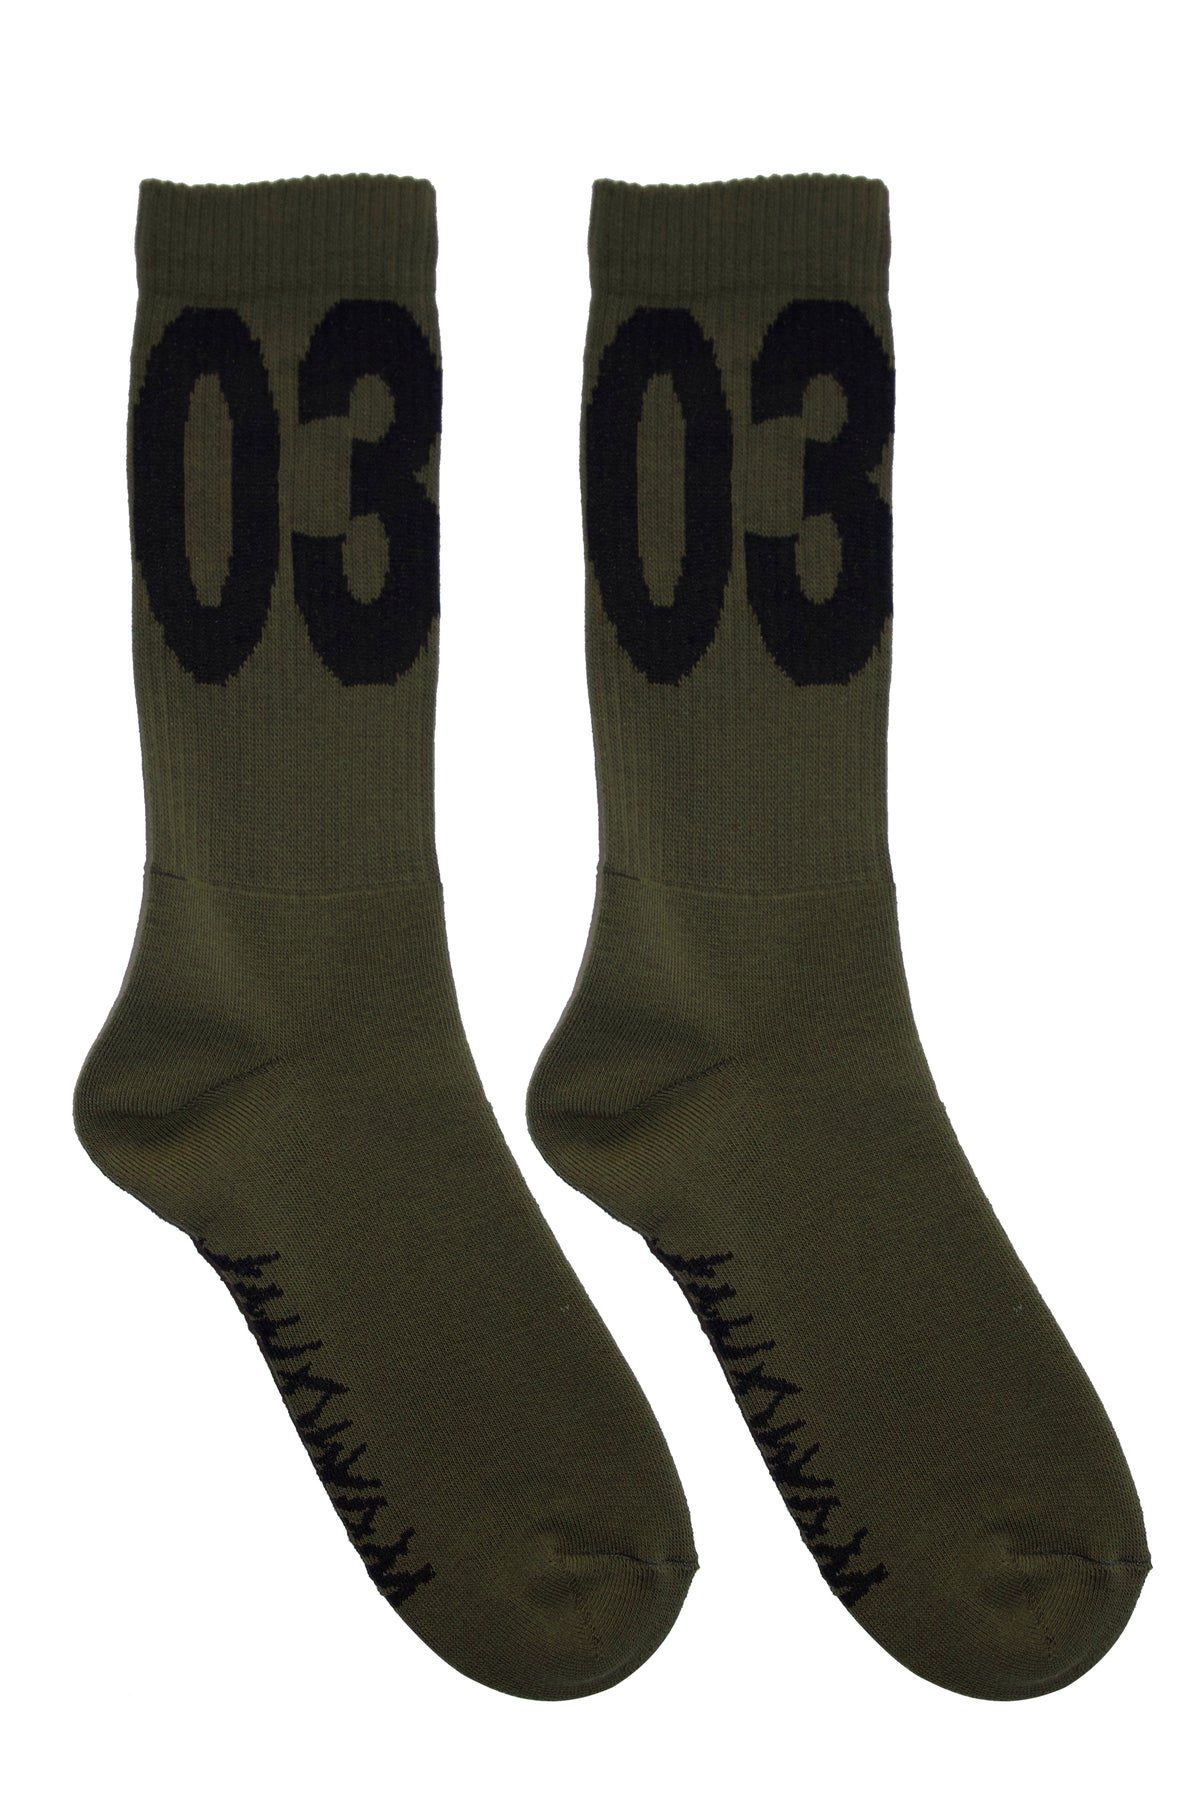 032c WWB 'MAX' Socks Washed Hunters Green/Black - 032c